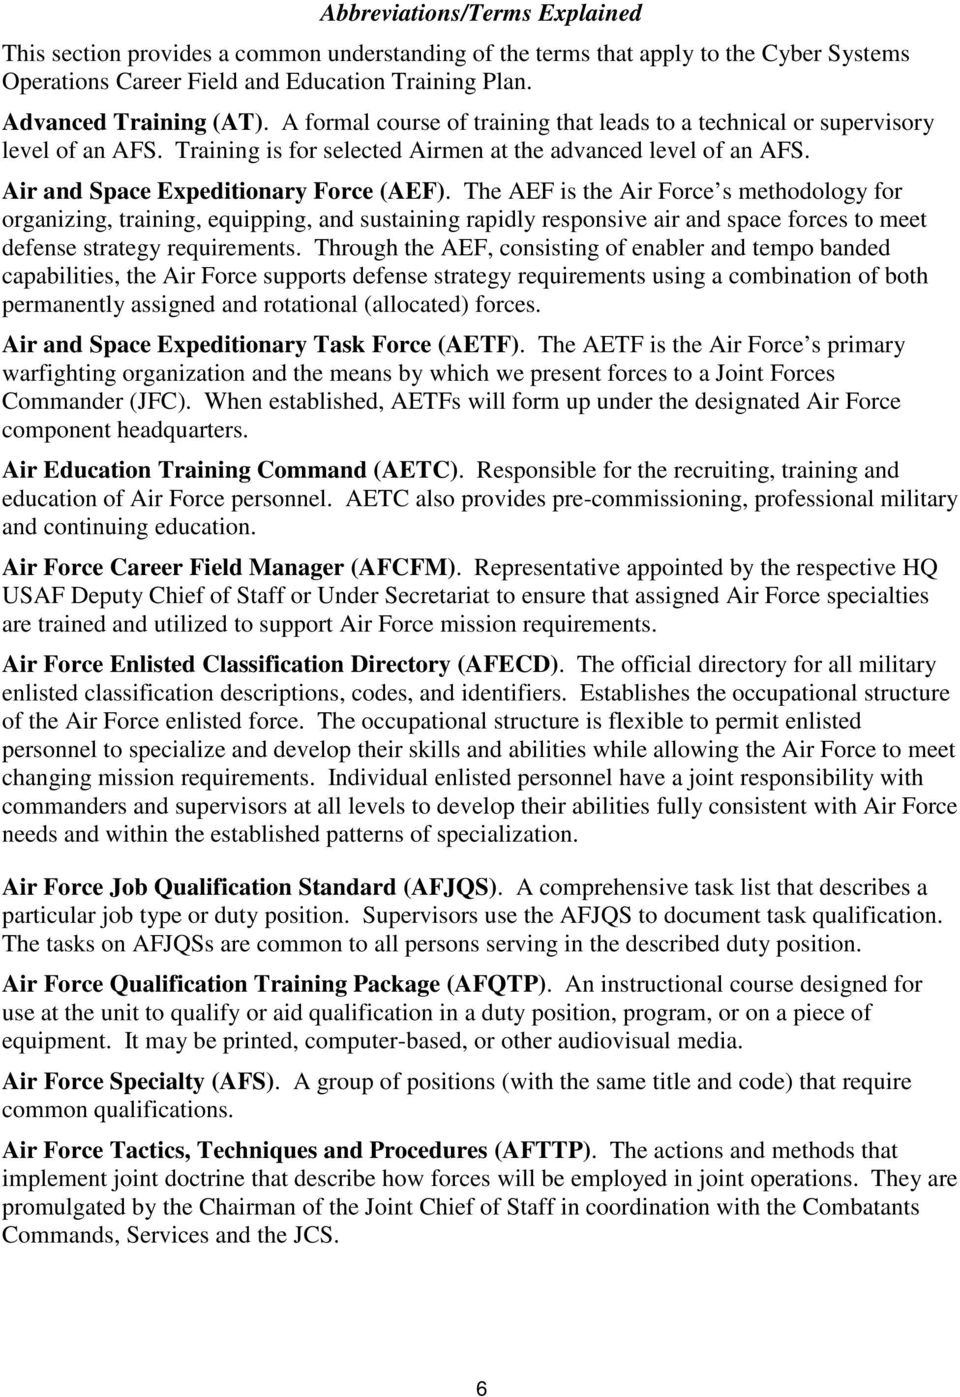 afsc dx cyber systems operations pdf the aef is the air force s methodology for organizing training equipping and